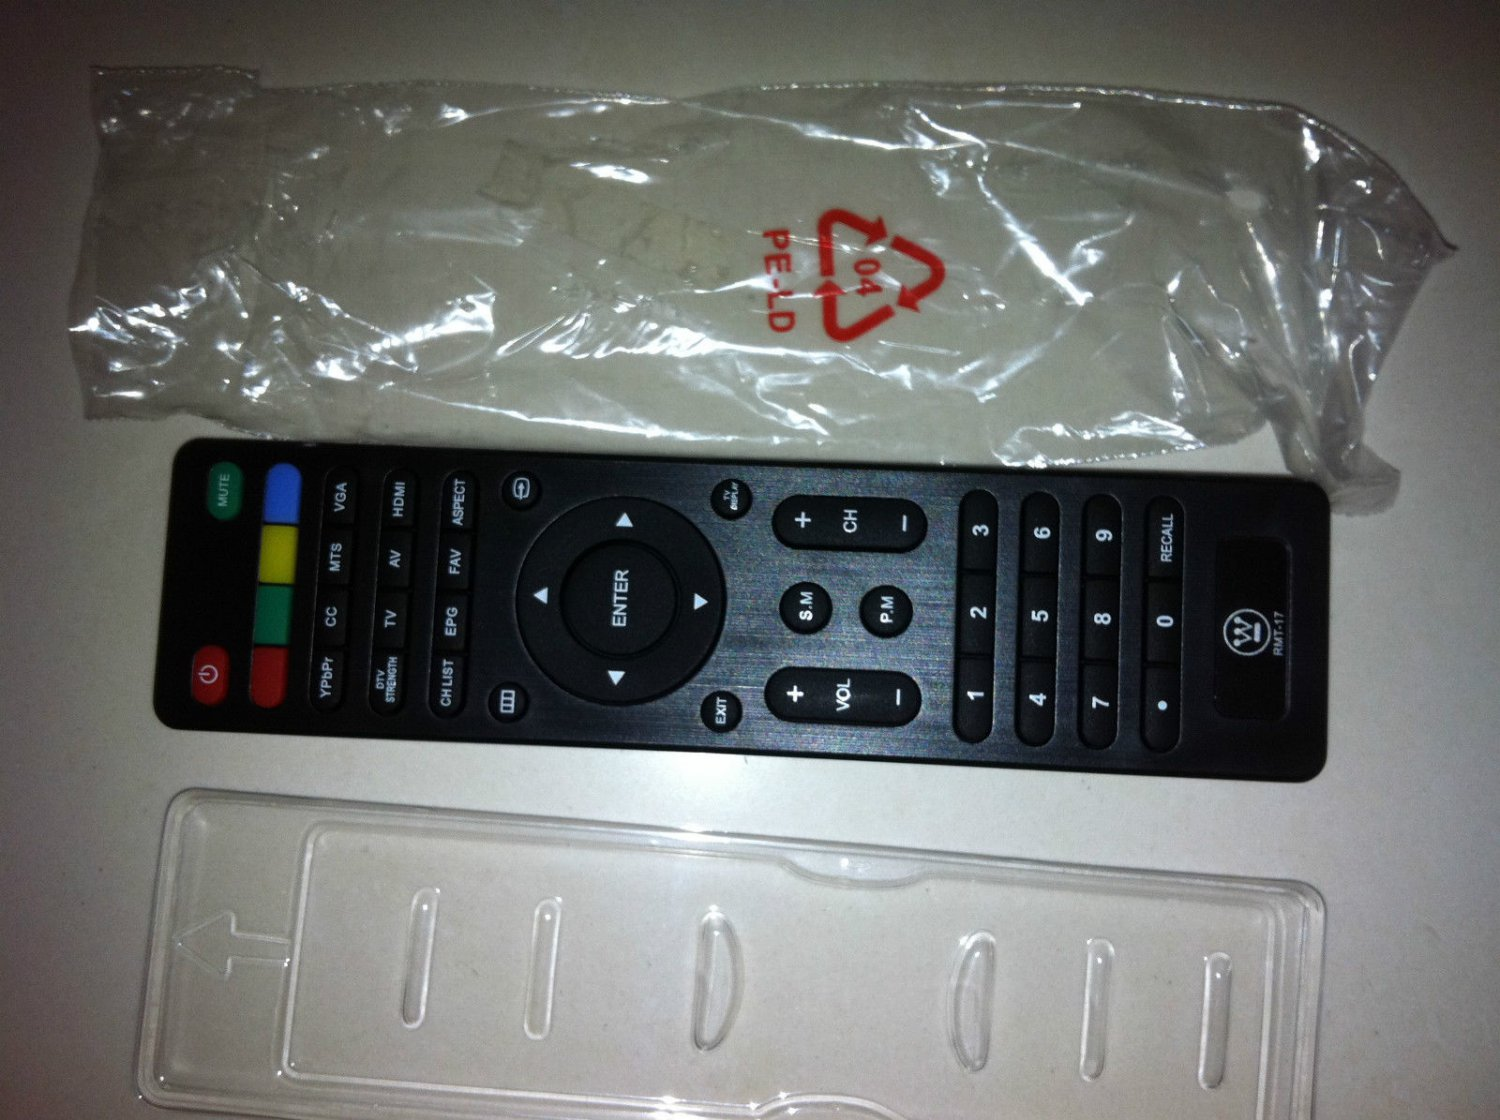 New Westinghouse RMT17 rmt-17 Remote for VR3215 VR2418 EW24T3LW EW24T7EW TV